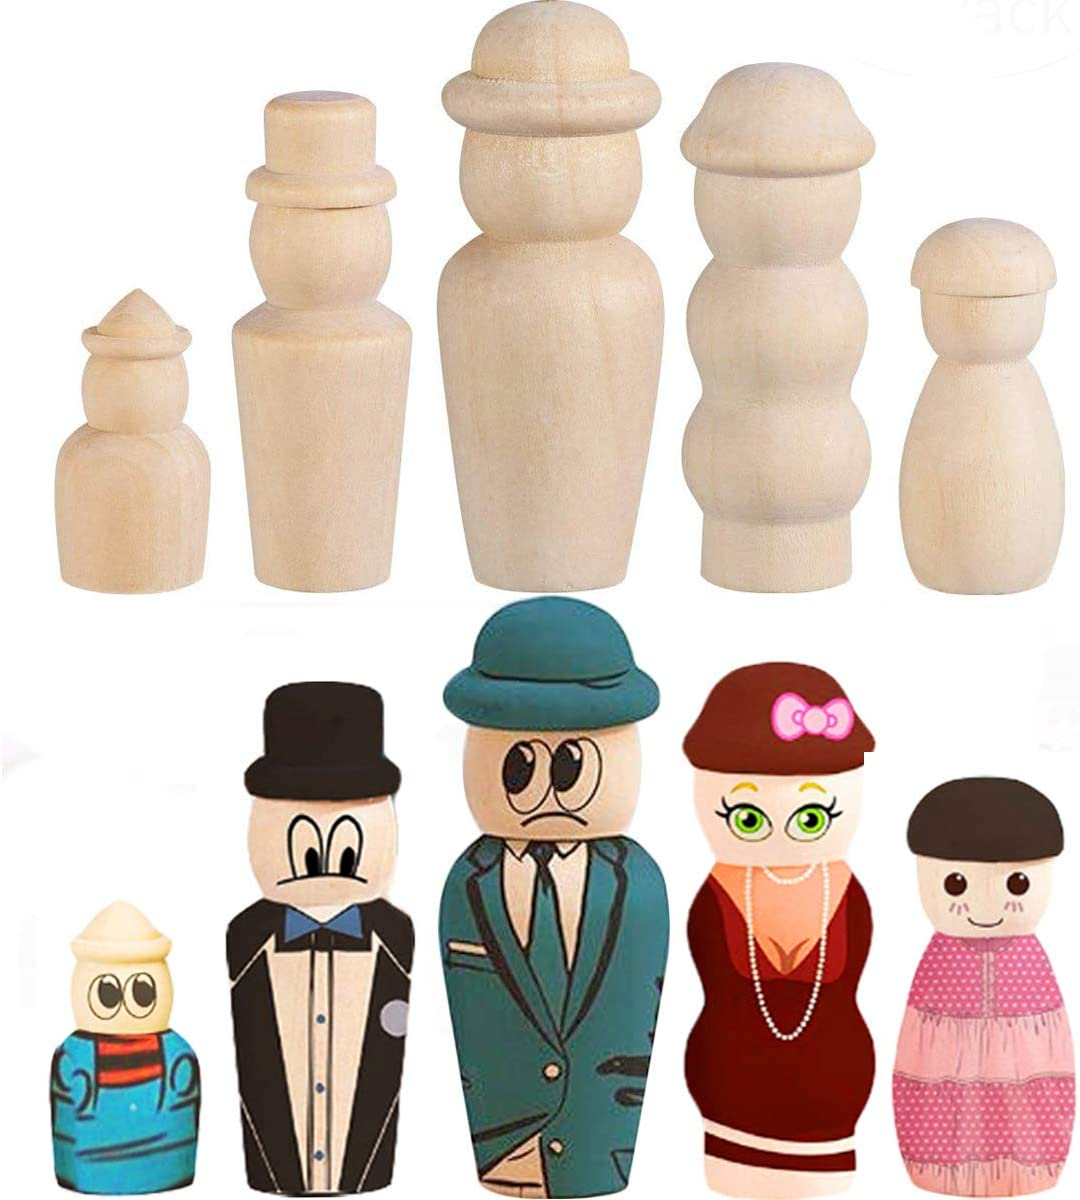 50* Wooden Peg Dolls Unfinished People DIY Doll Kids Painting Craft Art Projects